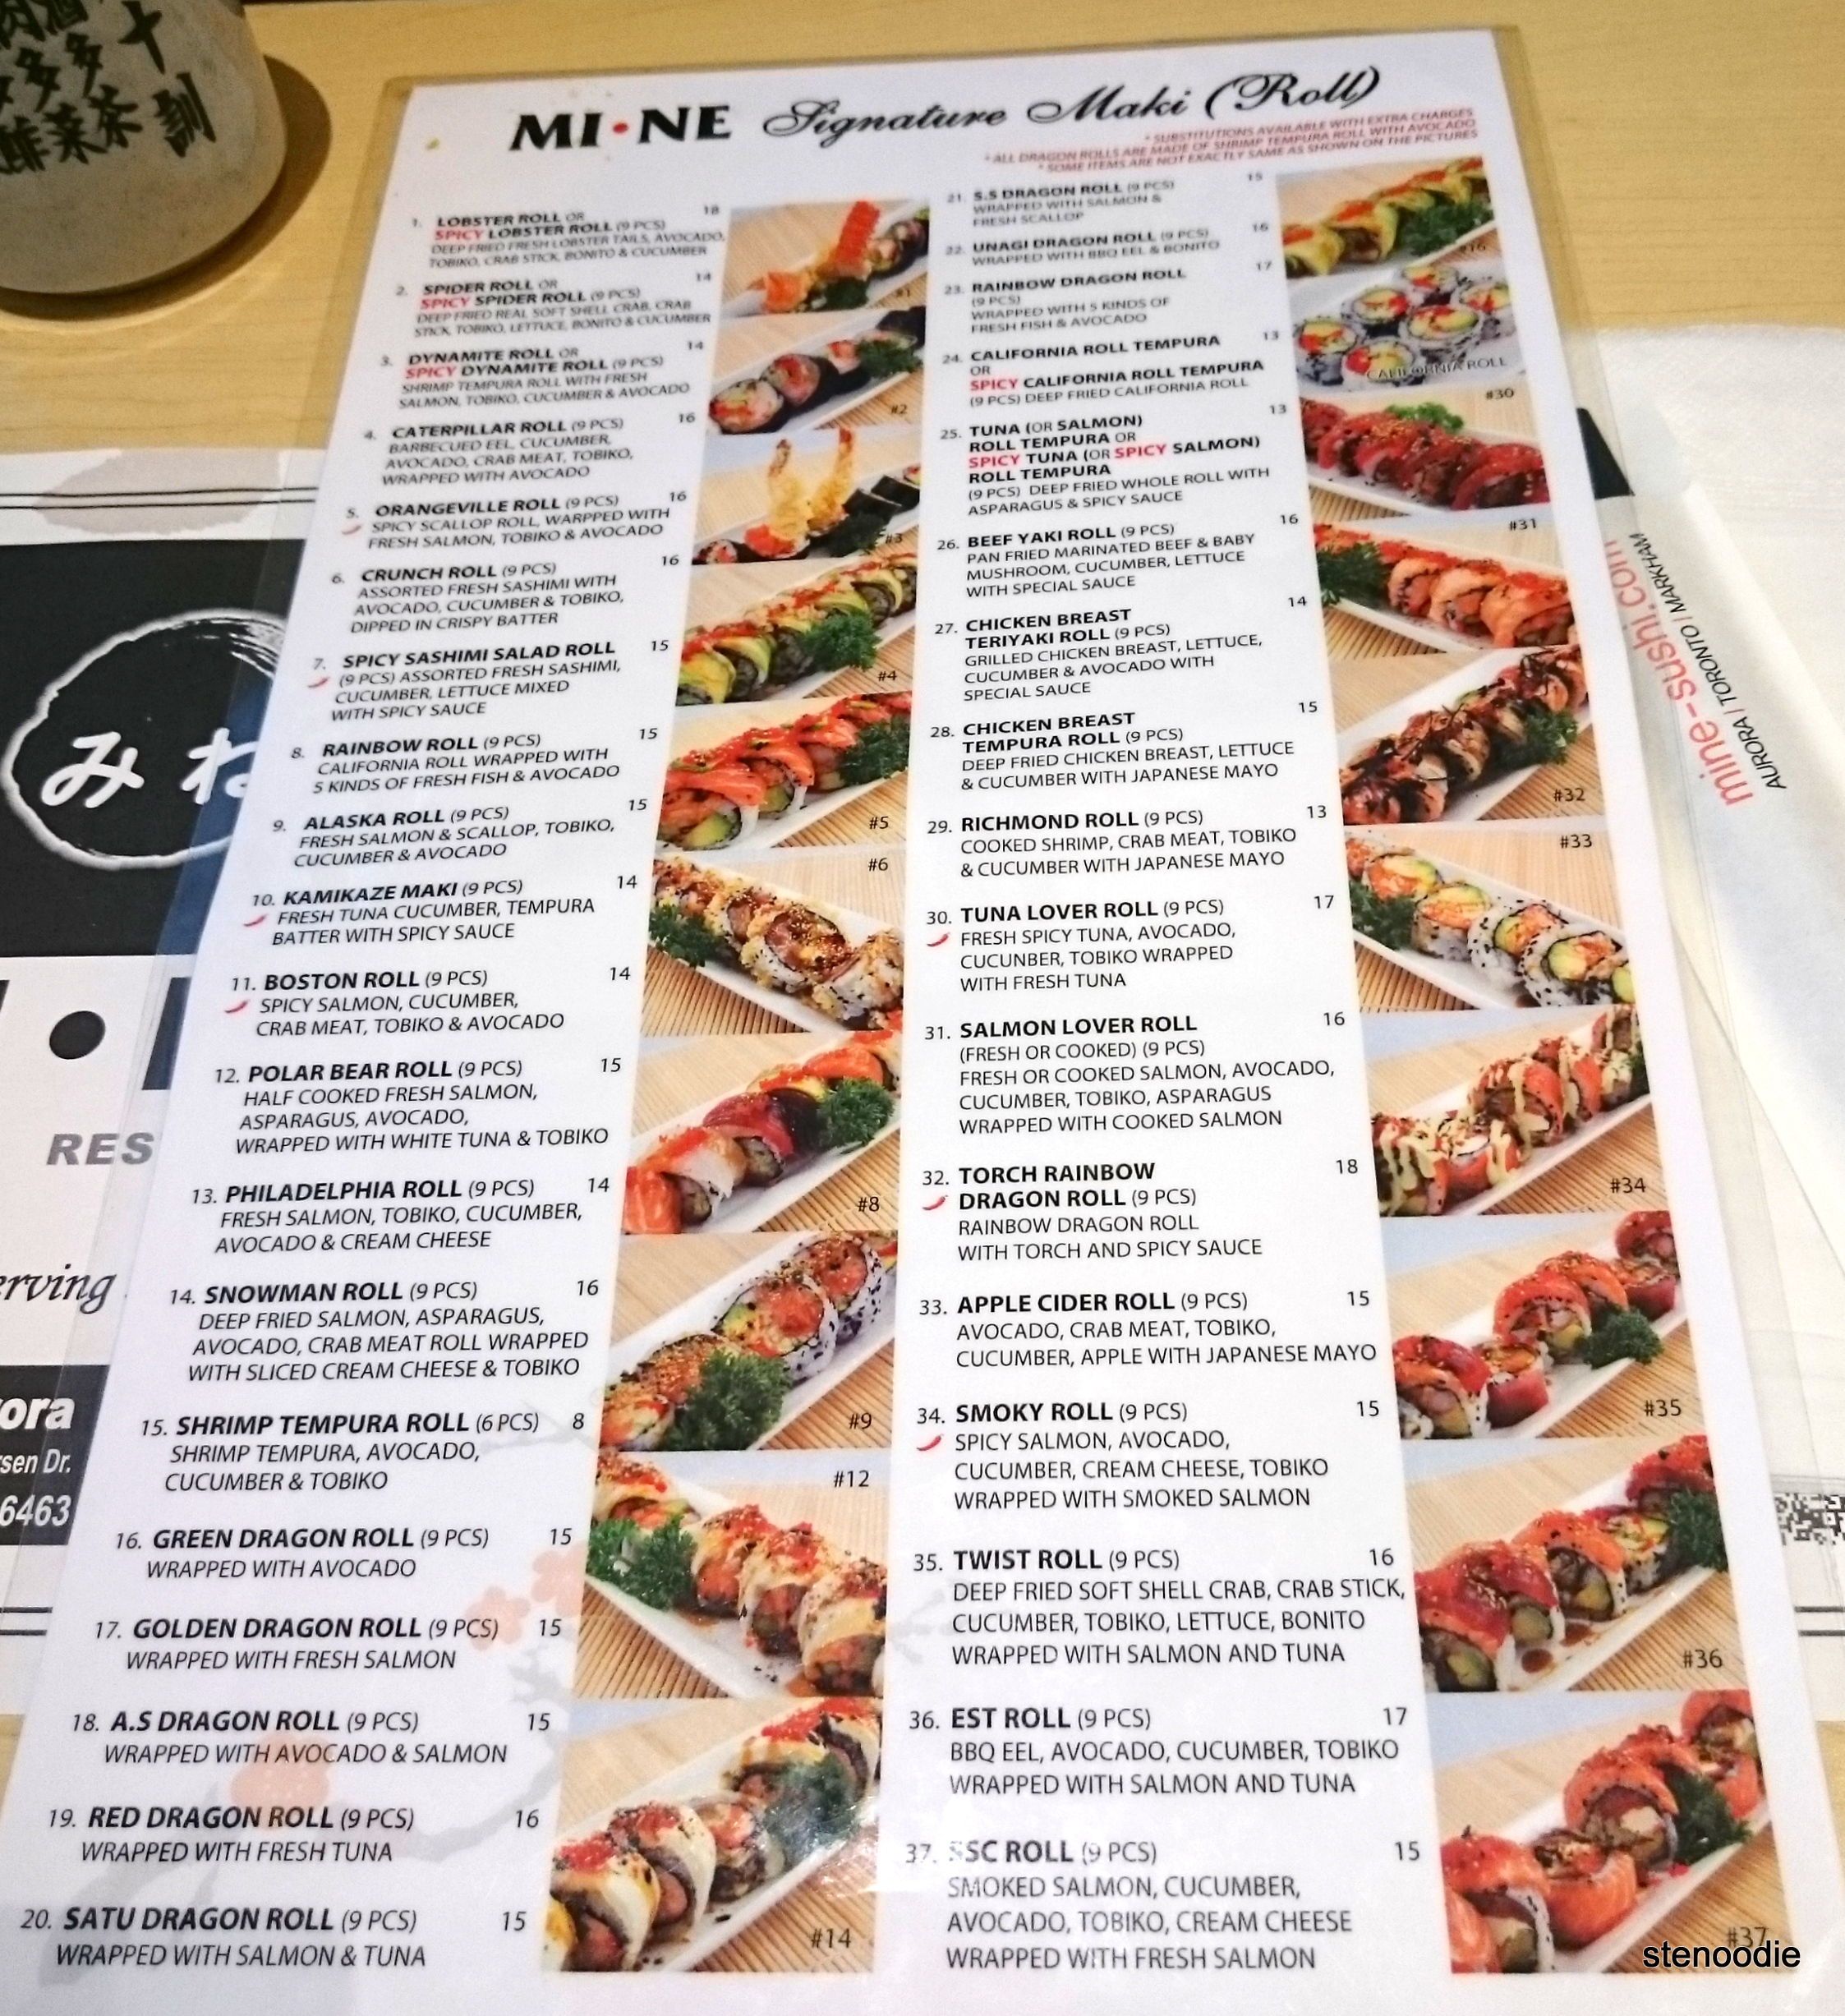 Mi-Ne Signature Maki (Roll) menu